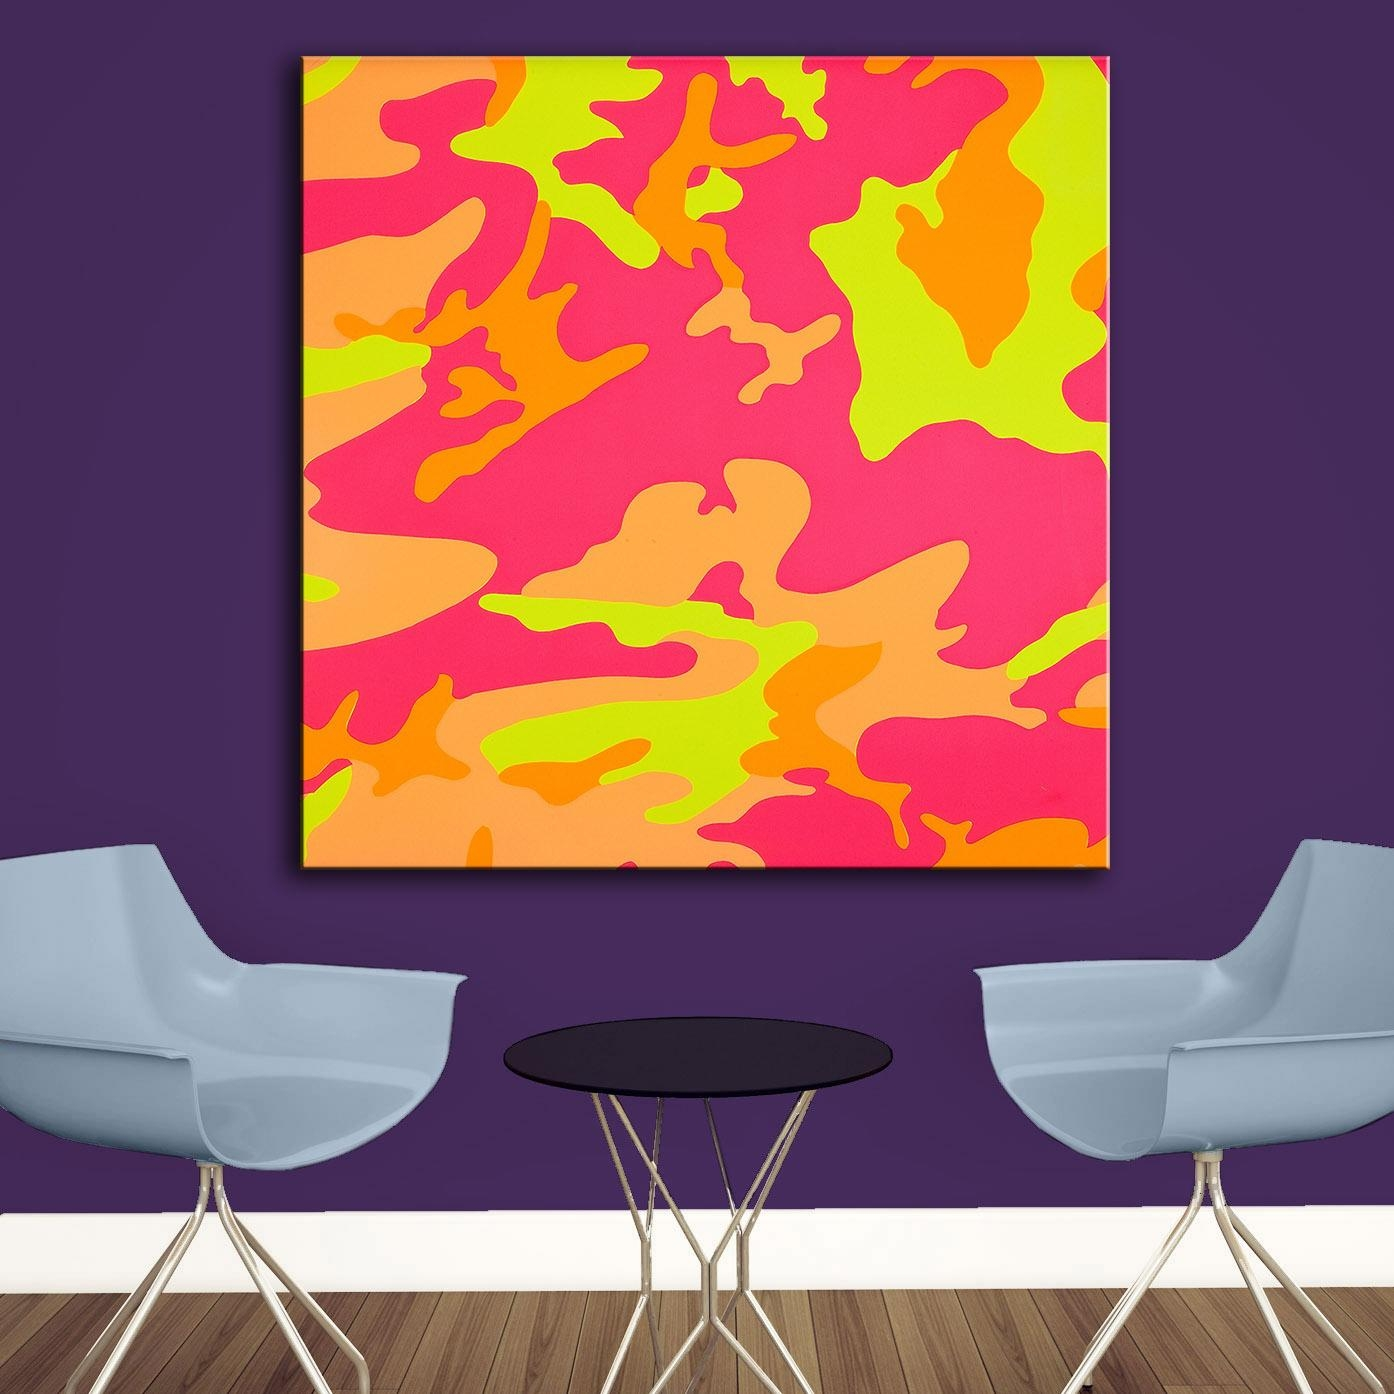 Compare Prices On Camouflage Wall Art Online Shopping/buy Low With Camouflage Wall Art (View 6 of 20)